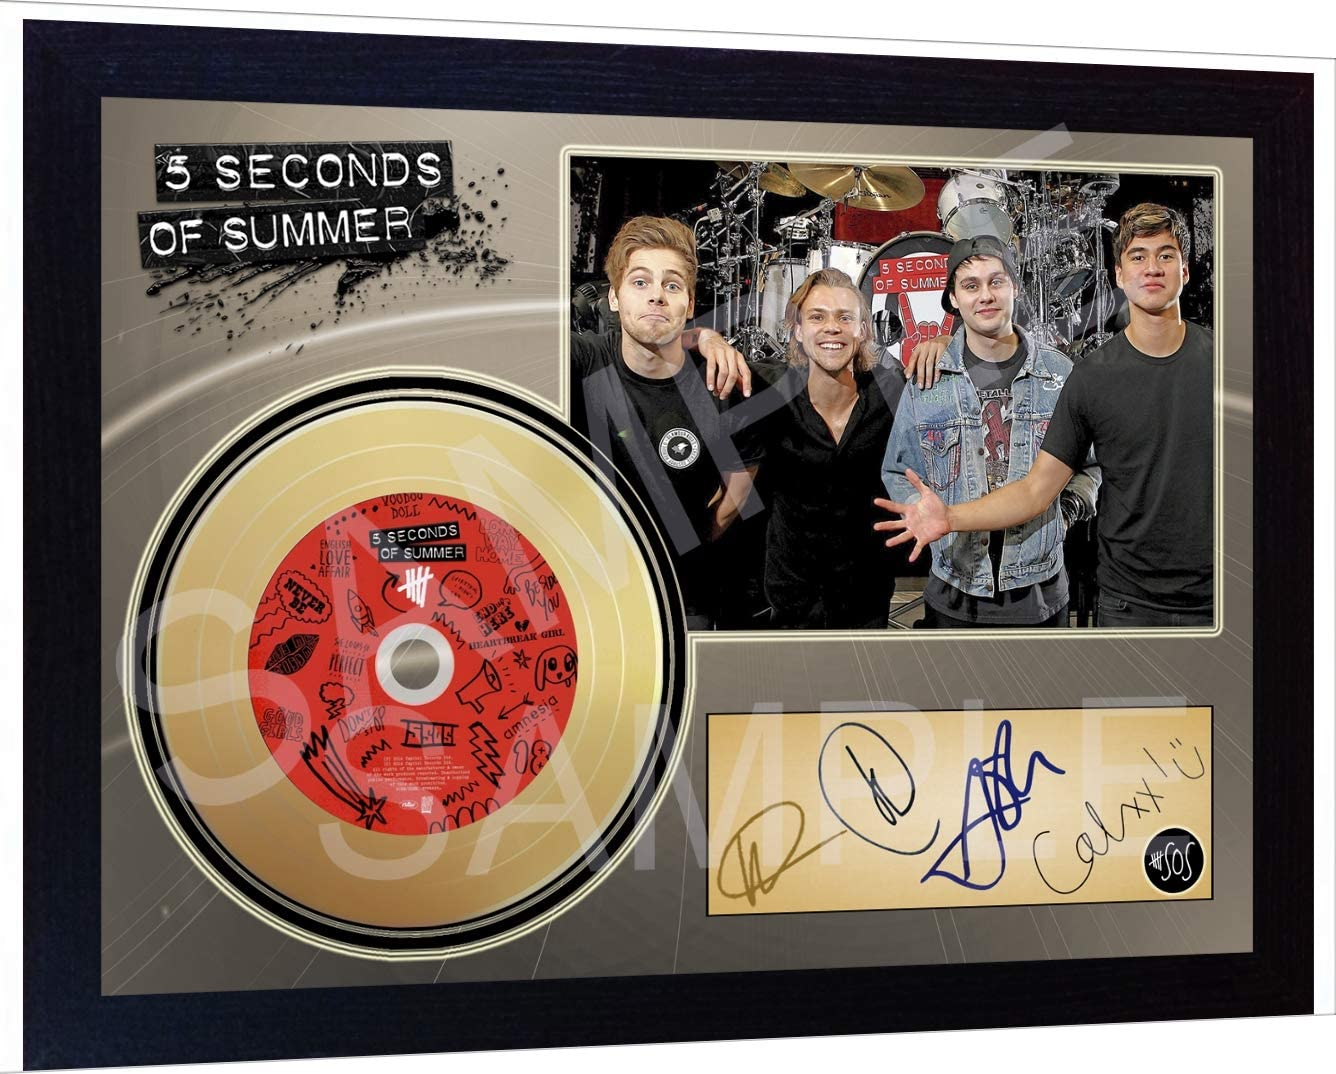 SGH SERVICES 5 Seconds of Summer Mini Gold Vinyl CD Record Signed Framed Photo Print